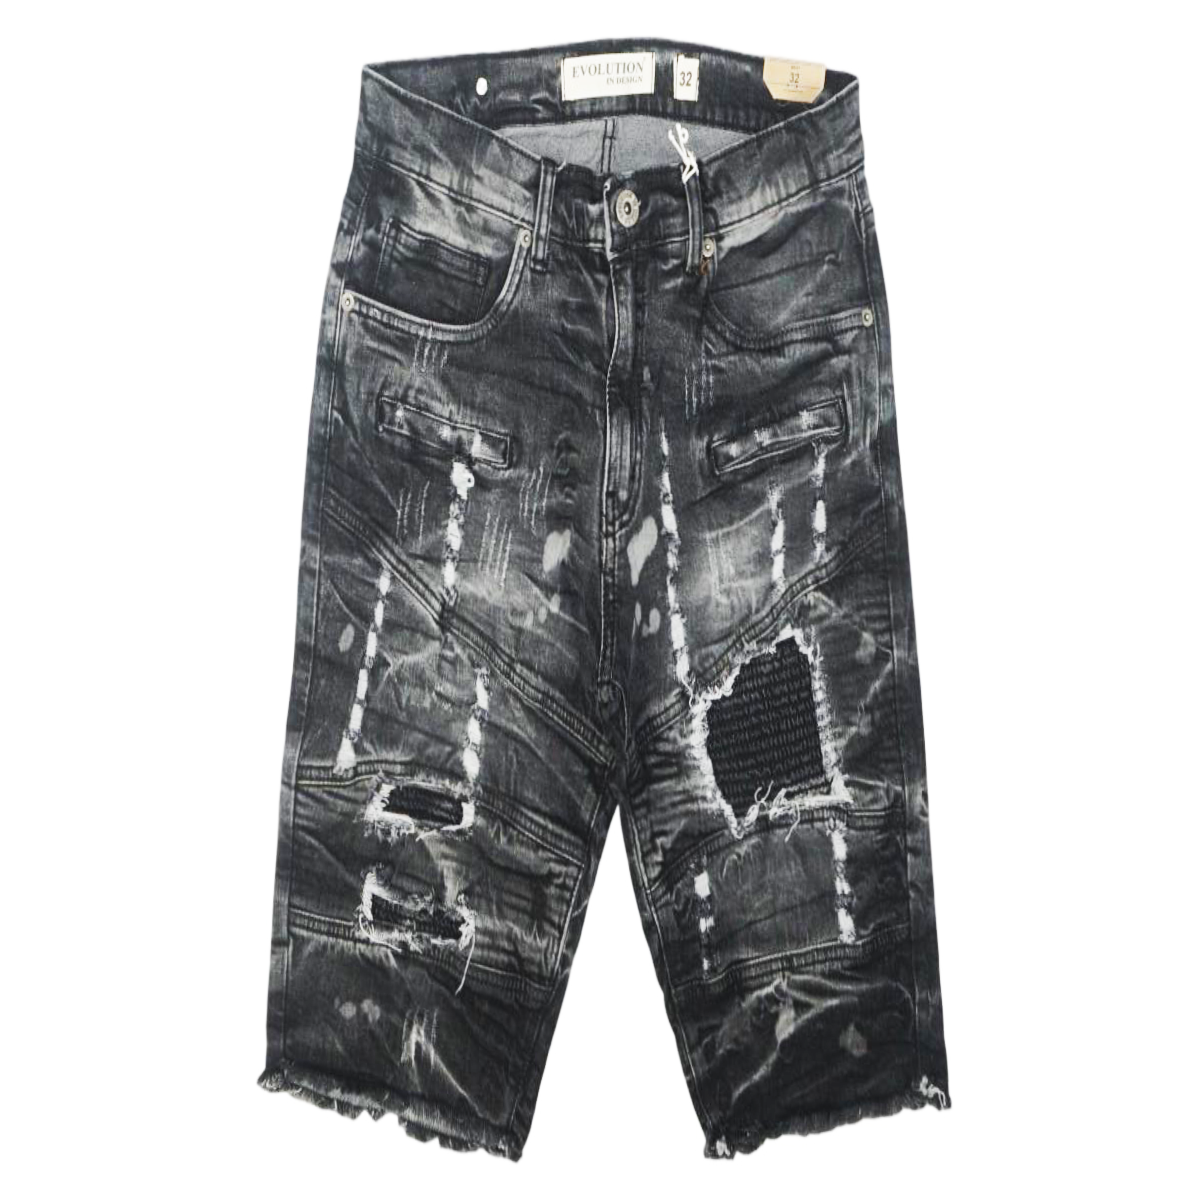 Distressed Biker Washed Shorts (Blk/Grey) /C2